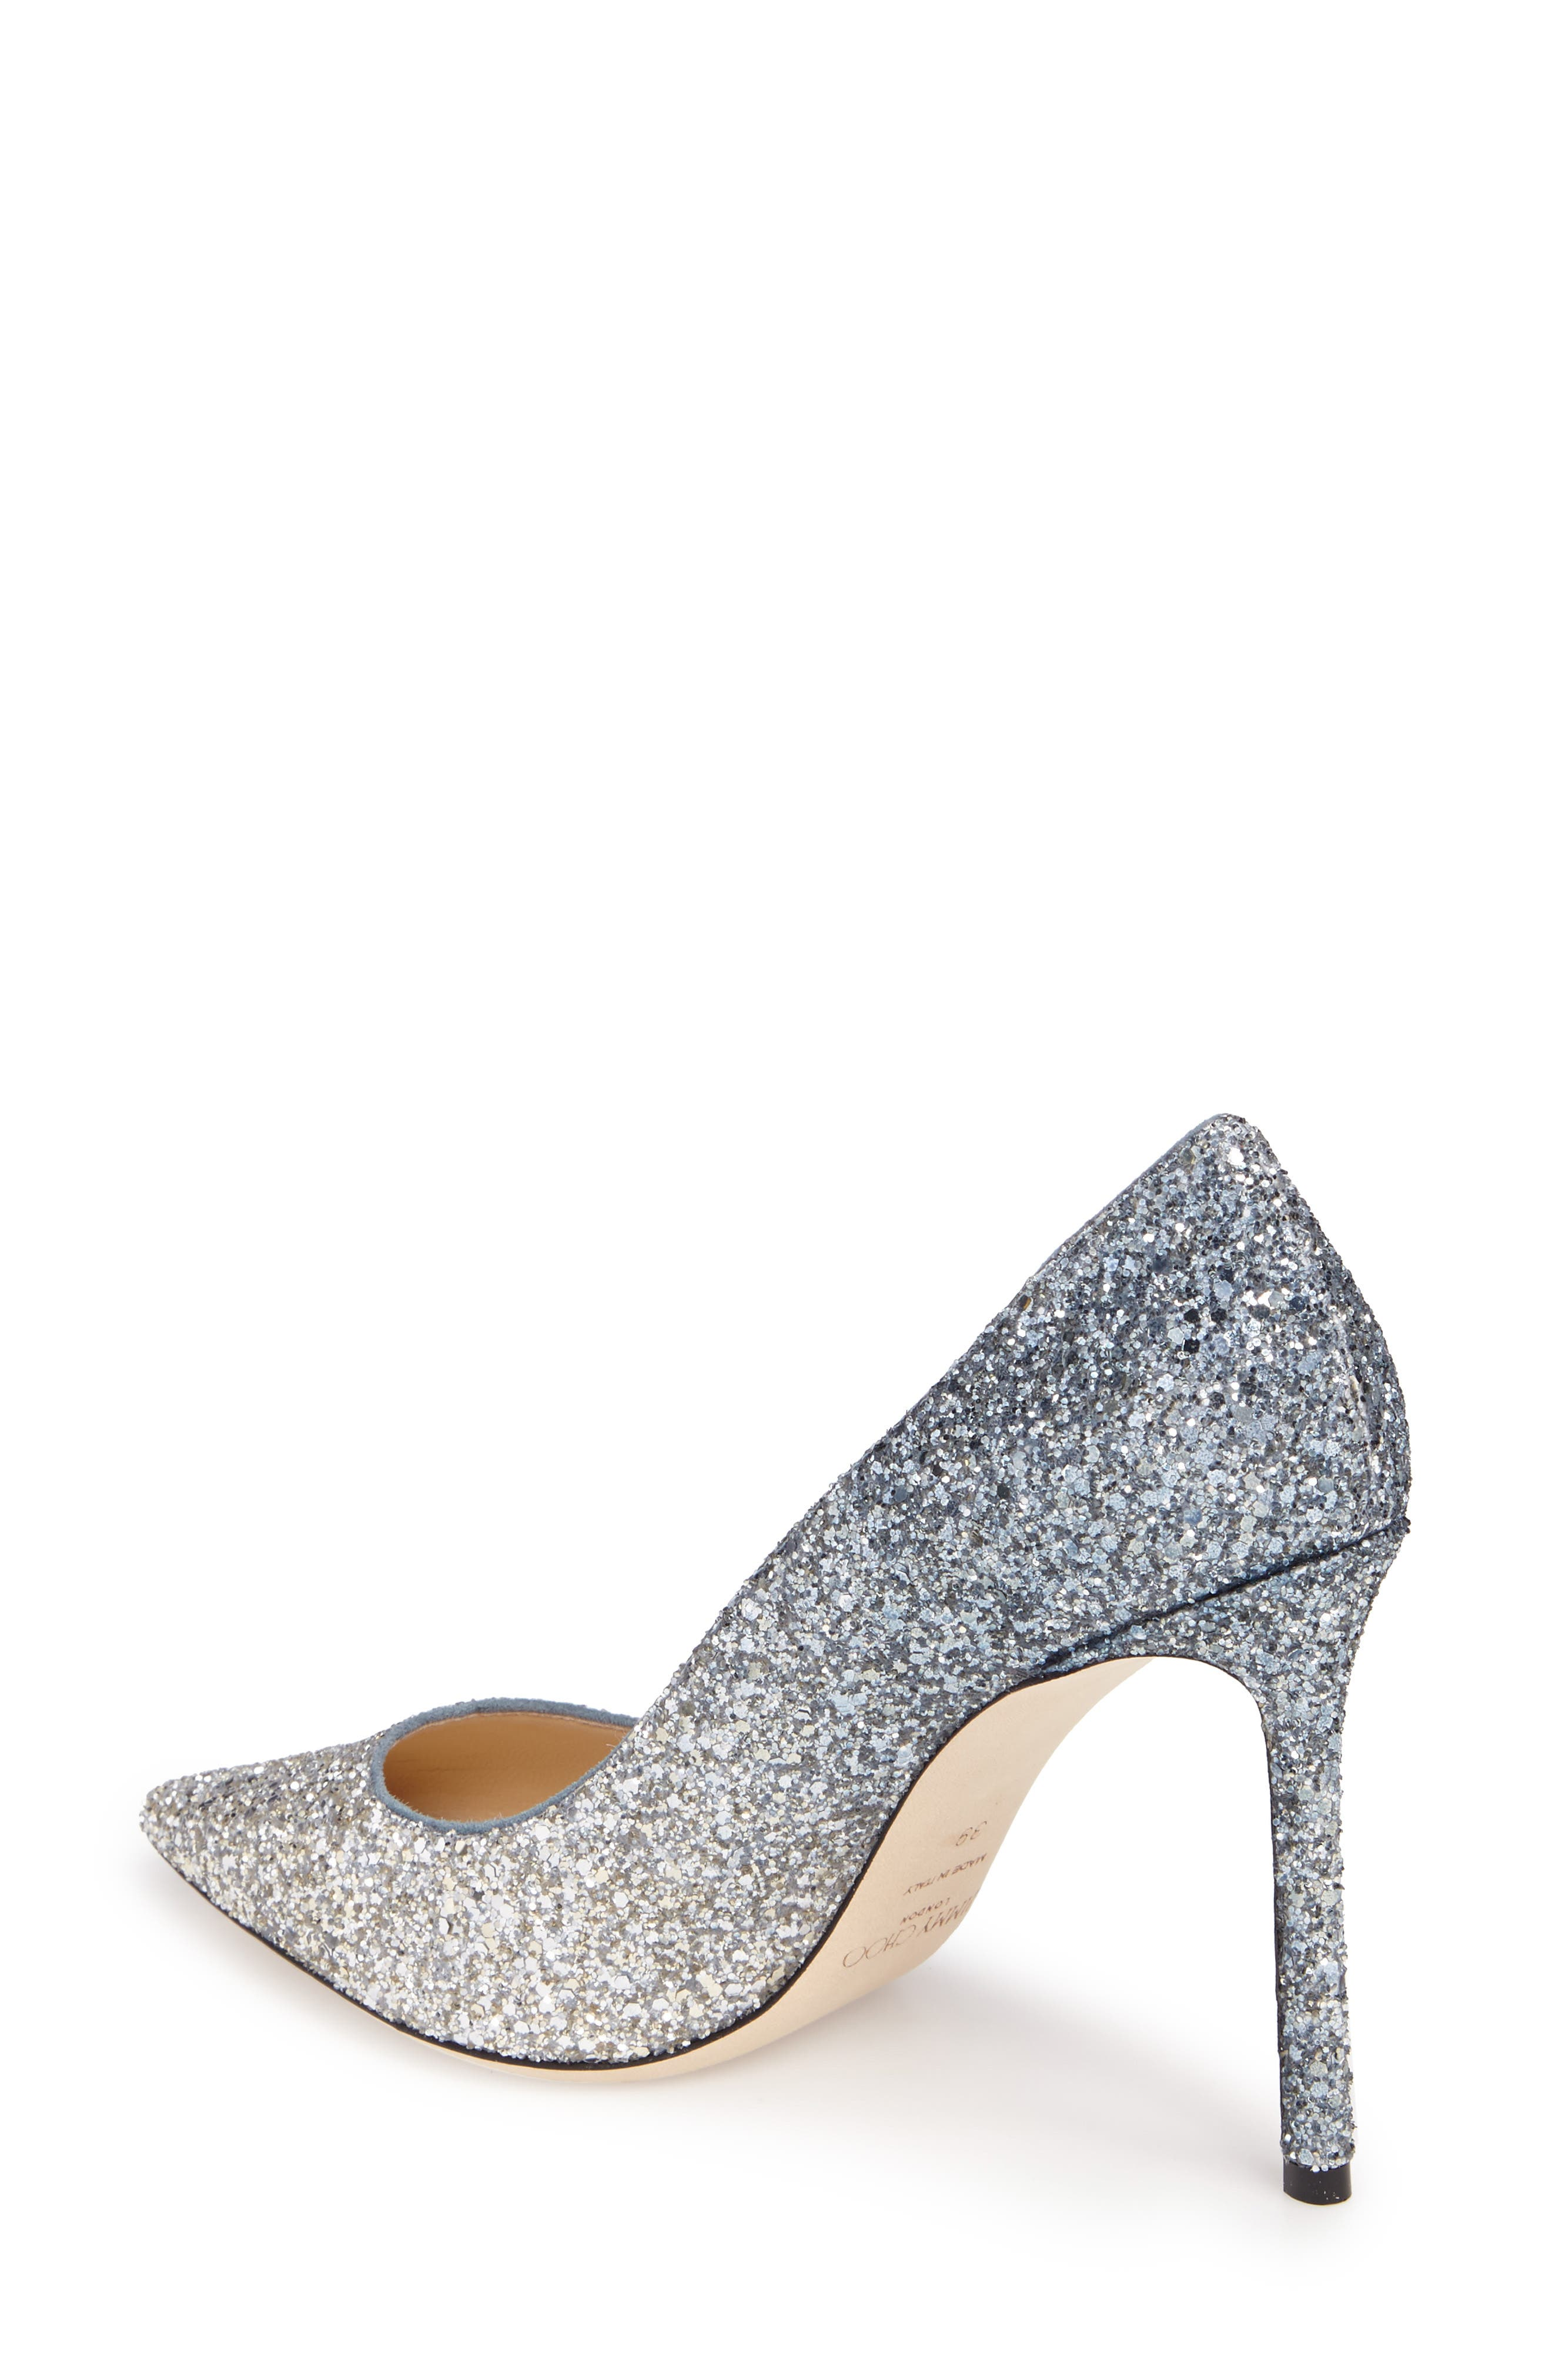 Romy Glitter Pump,                             Alternate thumbnail 4, color,                             Silver/ Dusk Blue